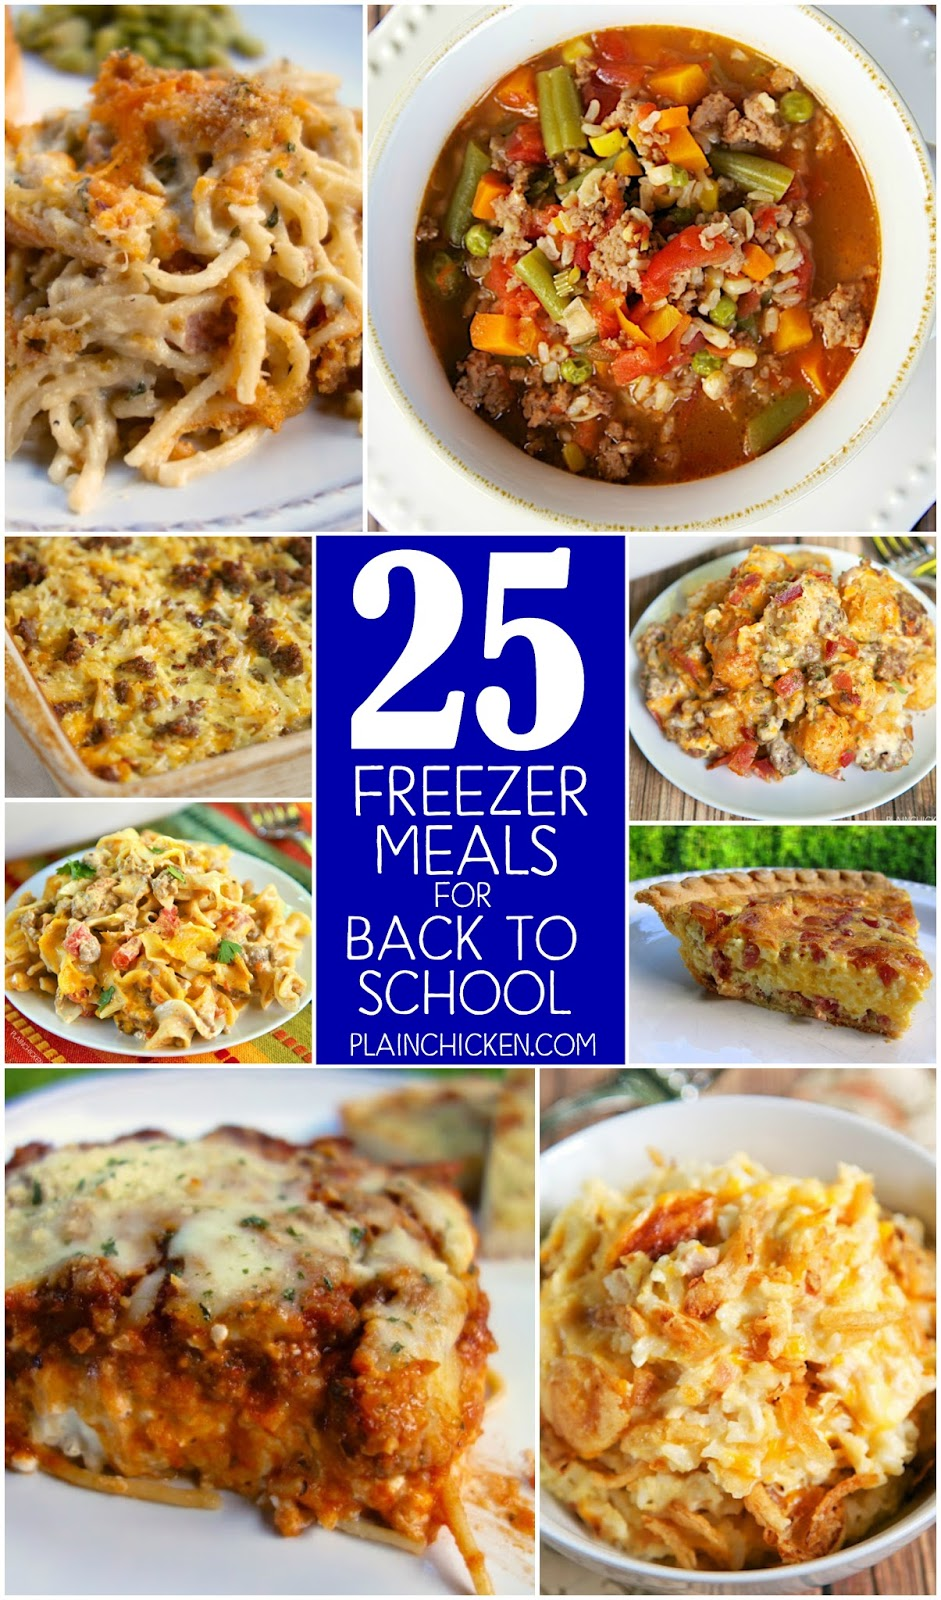 25 Freezer Meals for Back to School - 25 easy and delicious recipes that make great freezer meals. Casserole recipes, soup recipes, pasta recipes, rice casseroles and pasta sauces. GREAT list! I've already made several of these. Such a great help during the week!